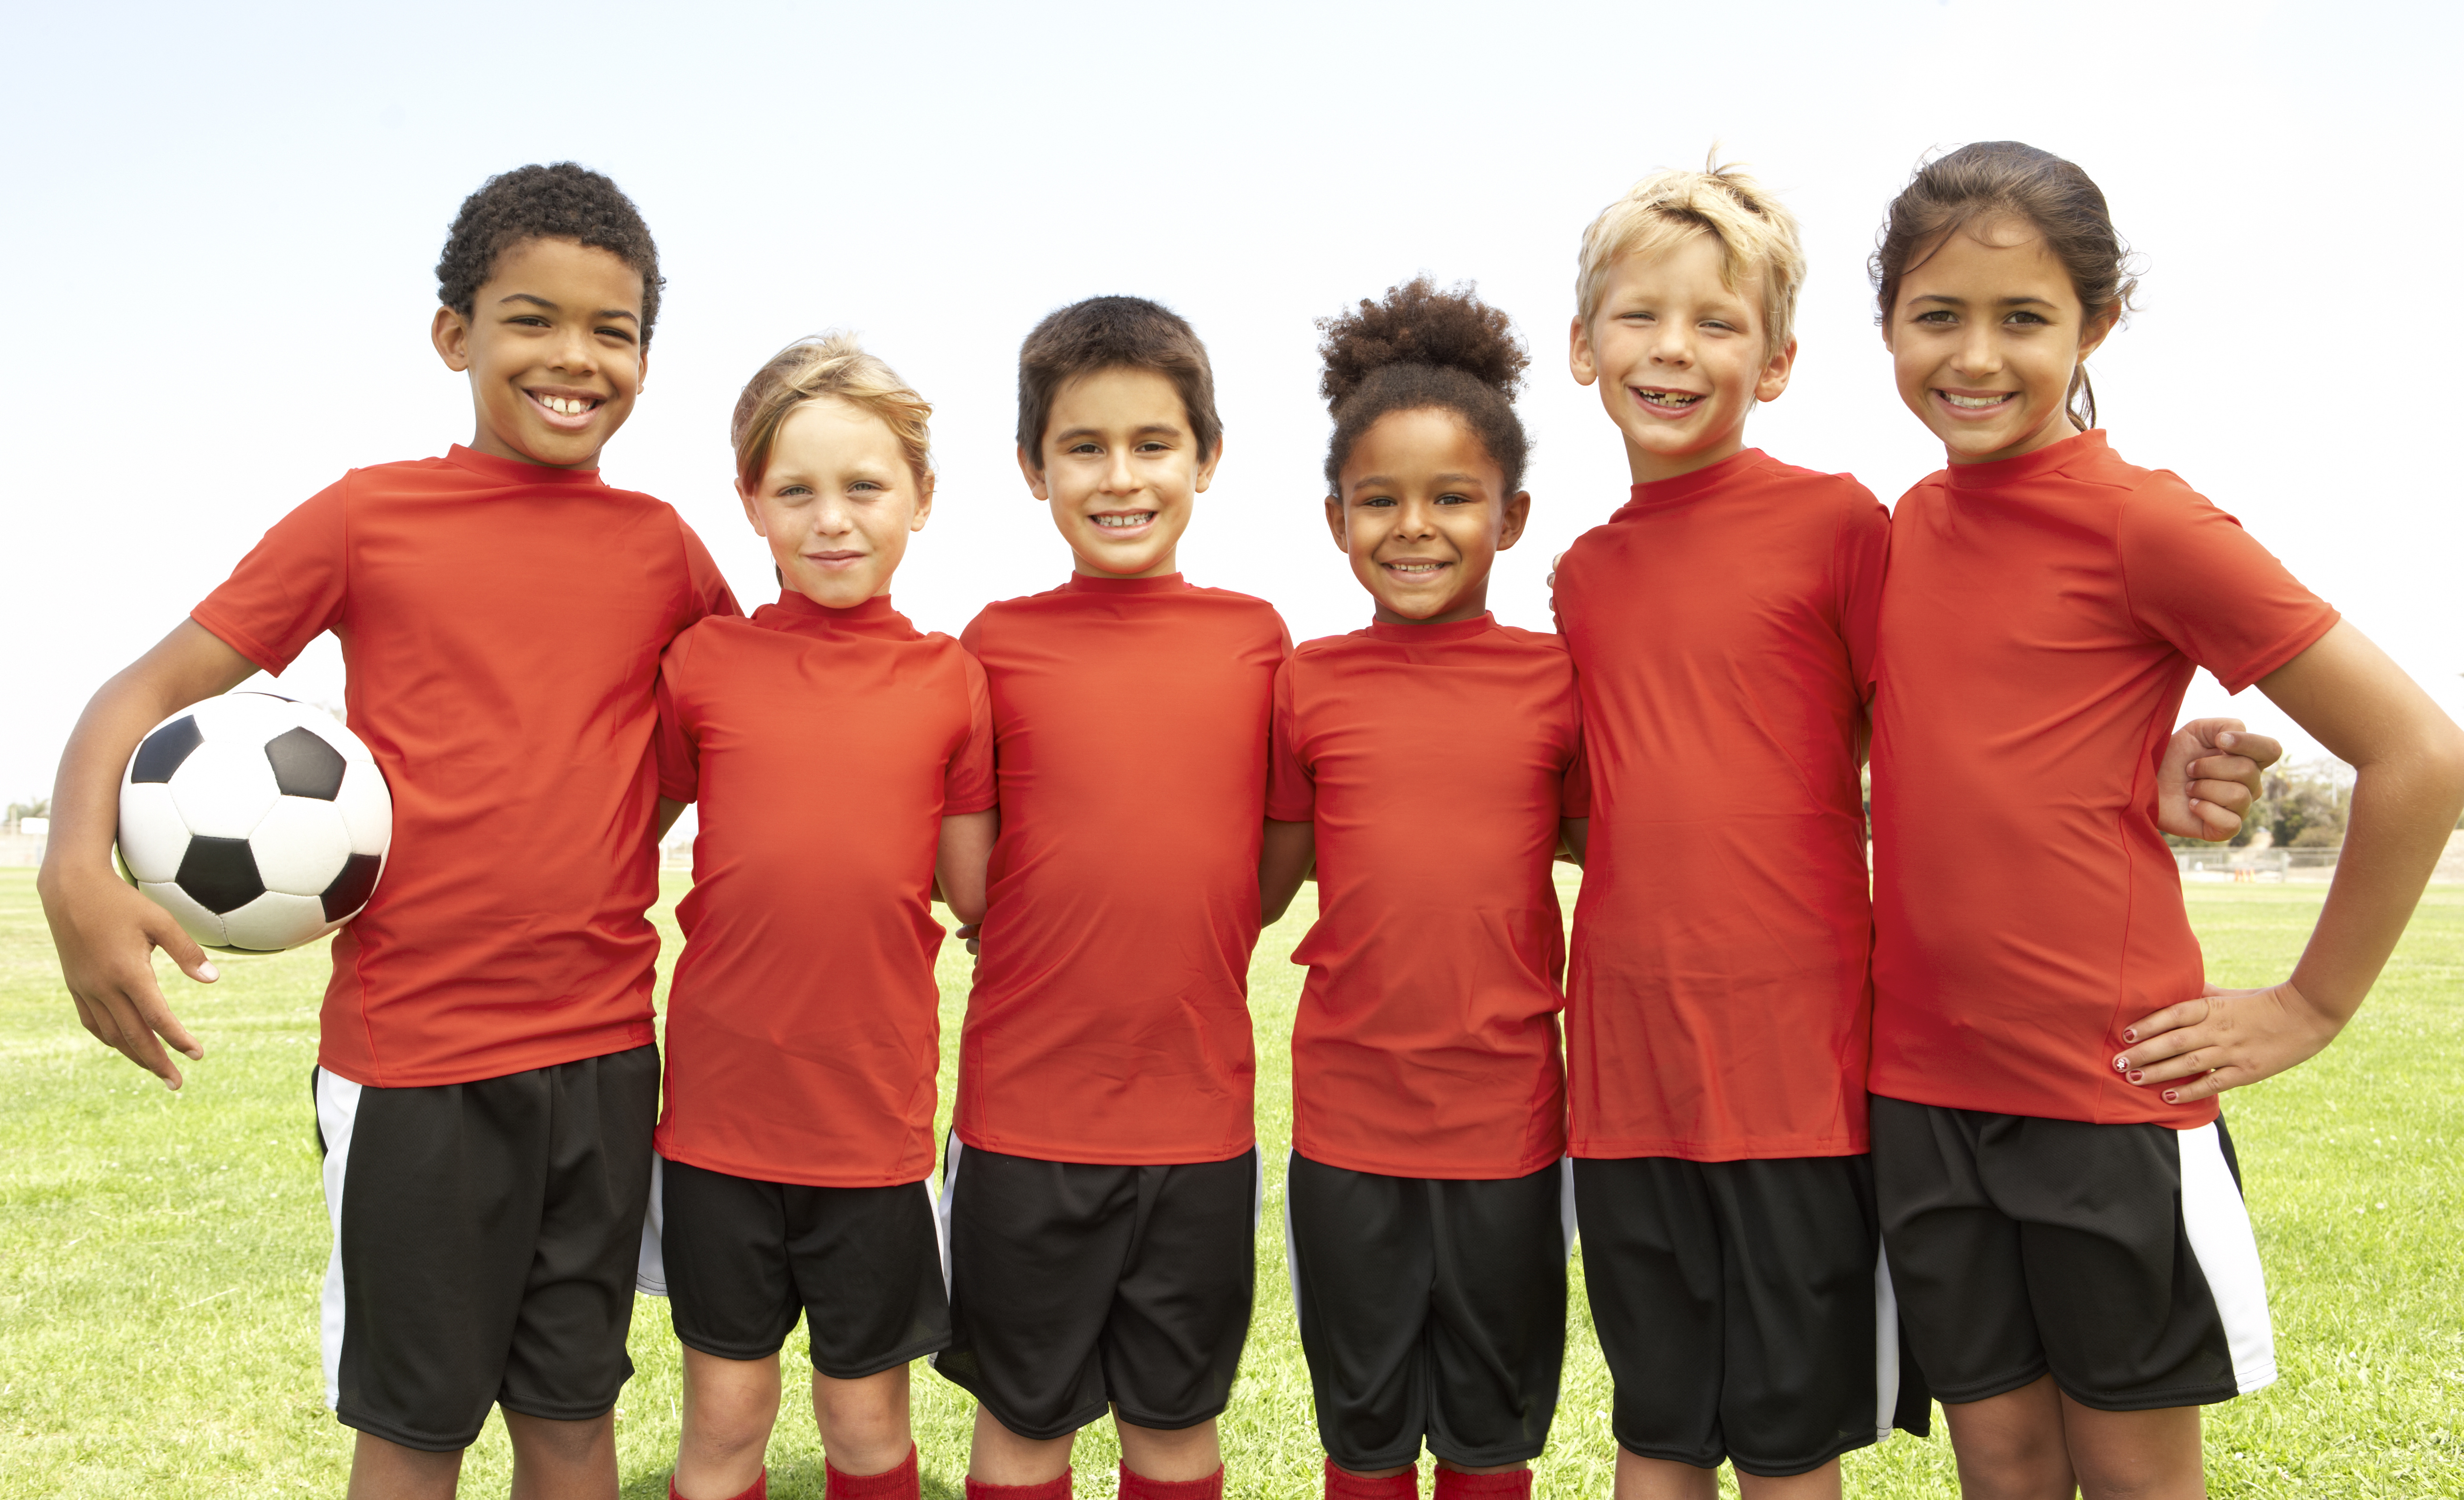 Children Extracurricular Activity